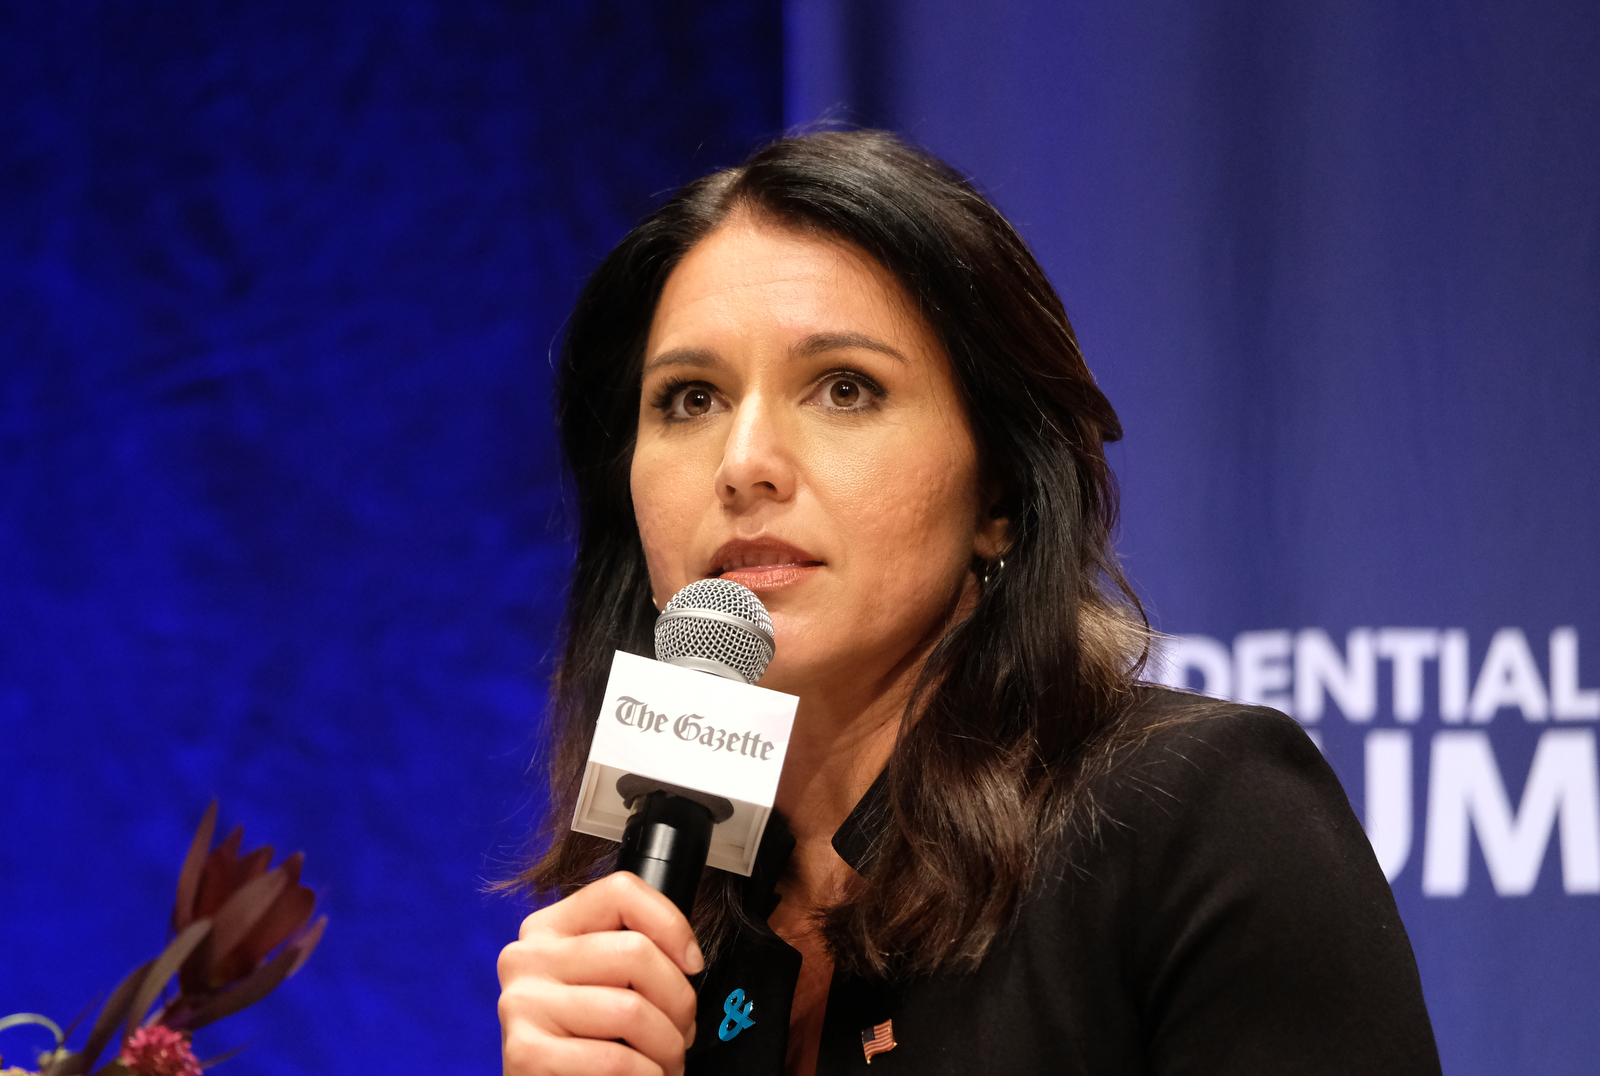 REPORT: Steven Crowder Claims YouTube Is Selectively Censoring Tulsi Gabbard